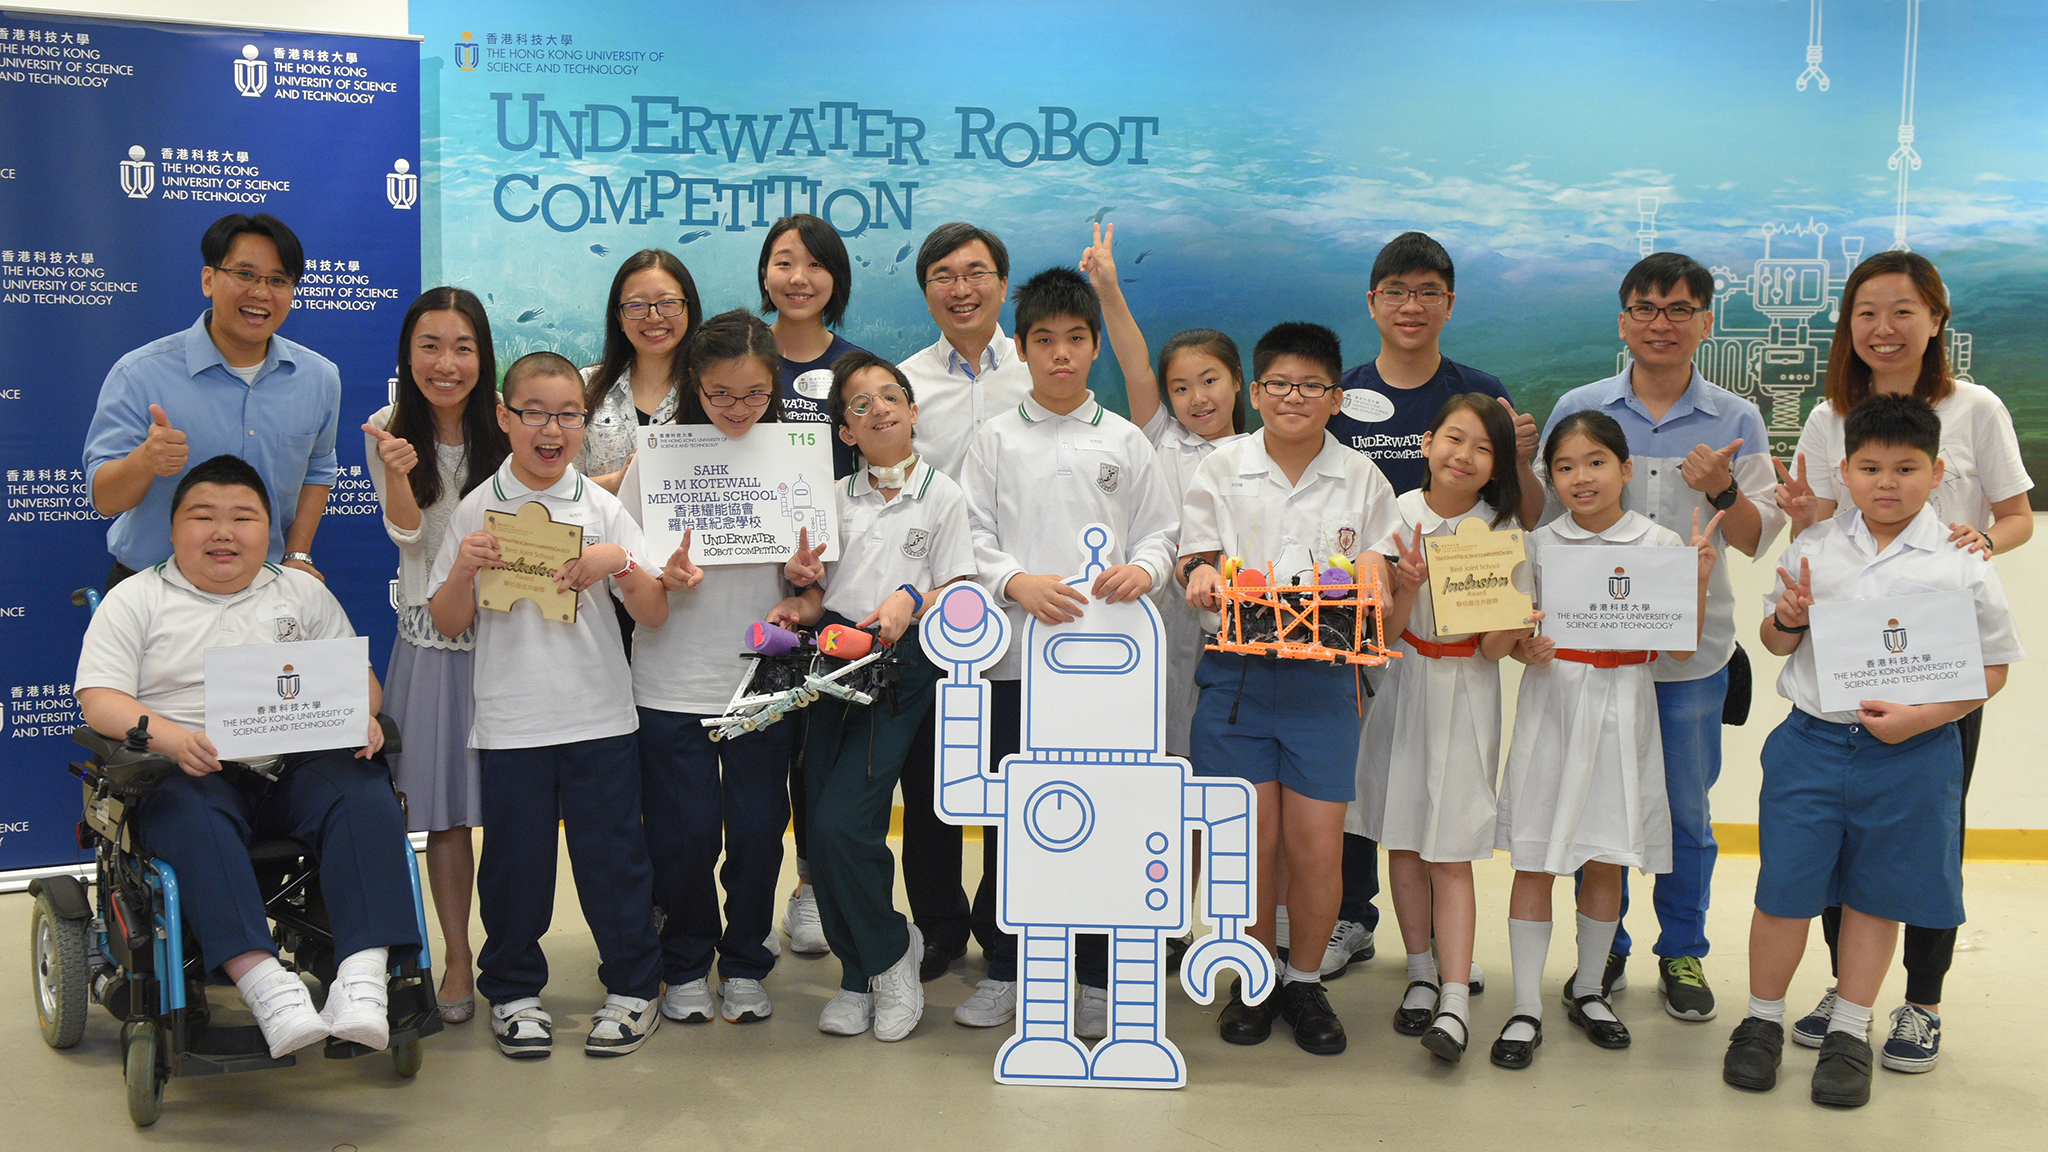 HKUST Underwater Robot Competition